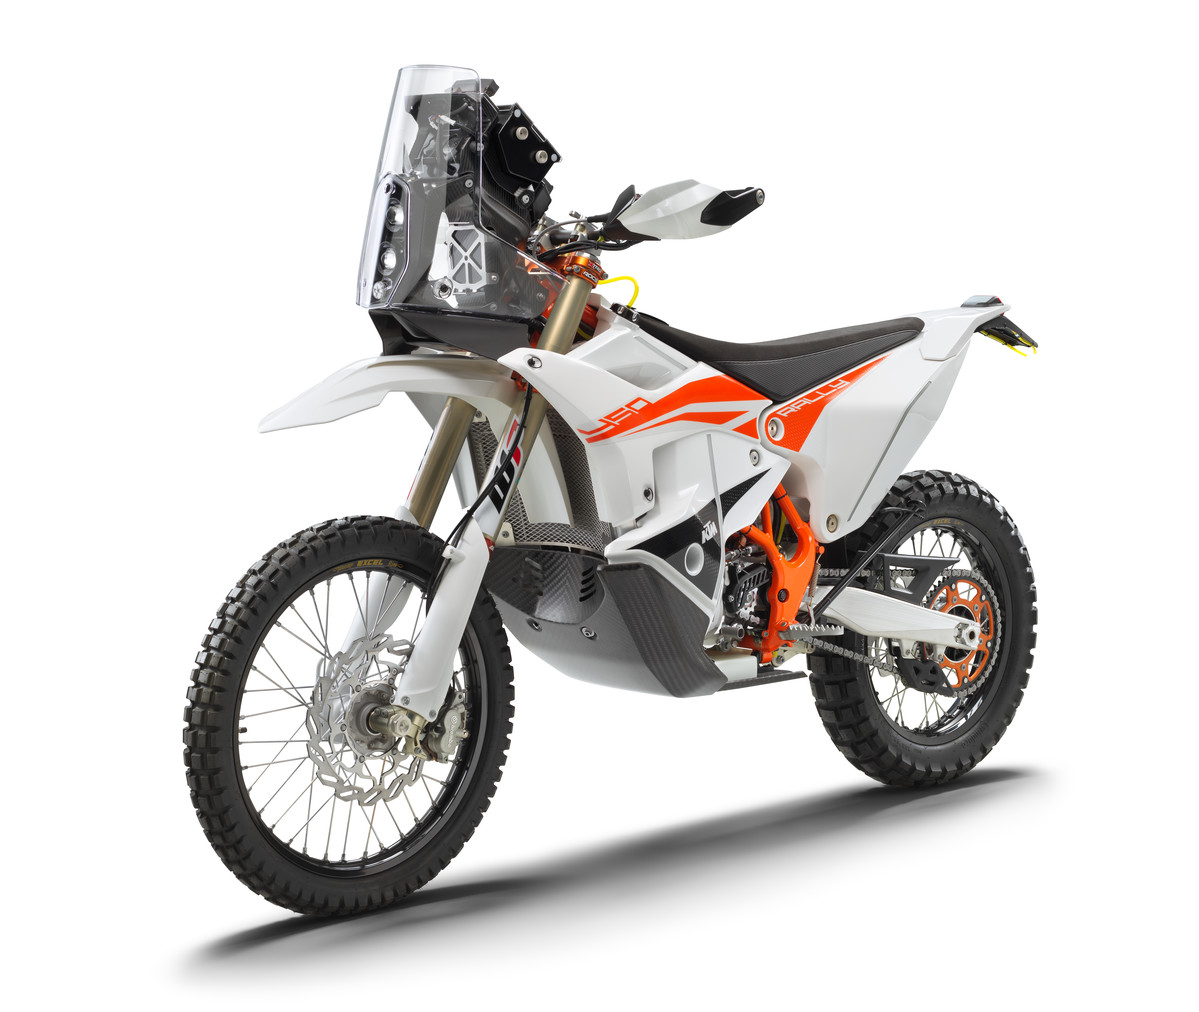 KTM 450 RALLY FACTORY REPLICA left front 2022